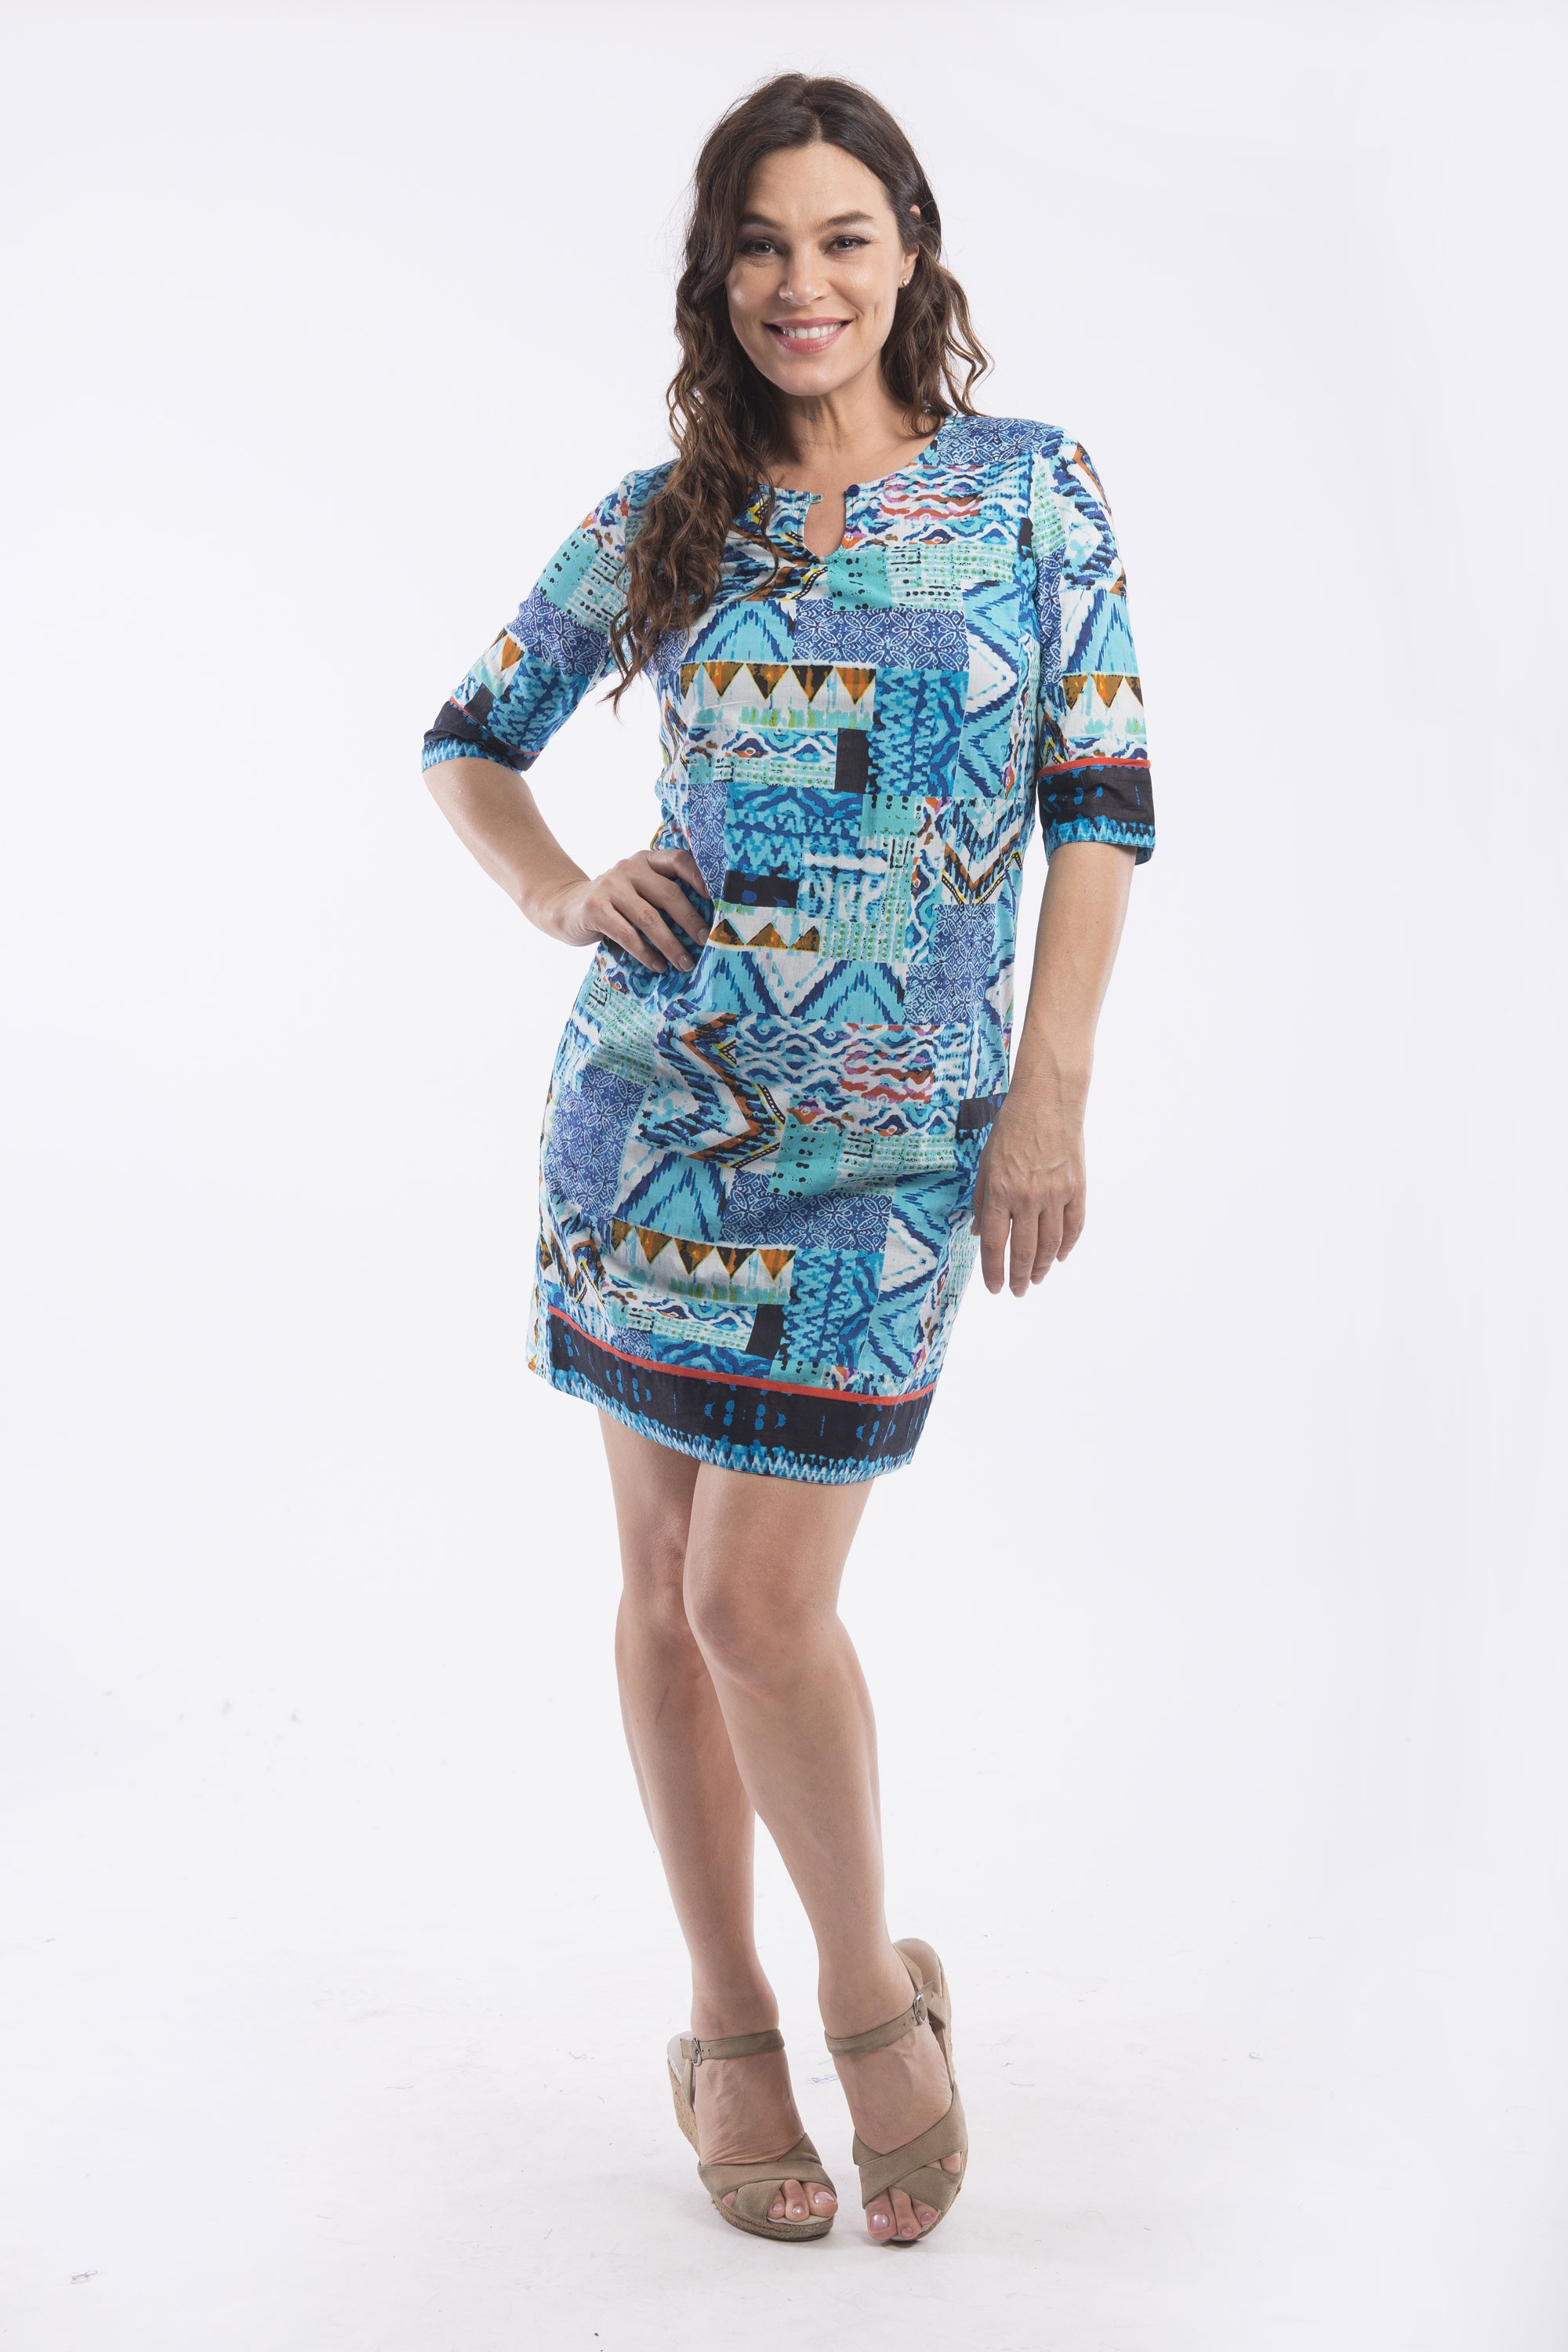 Myrtos by Orientique 3/4 Sleeve Shift Dress